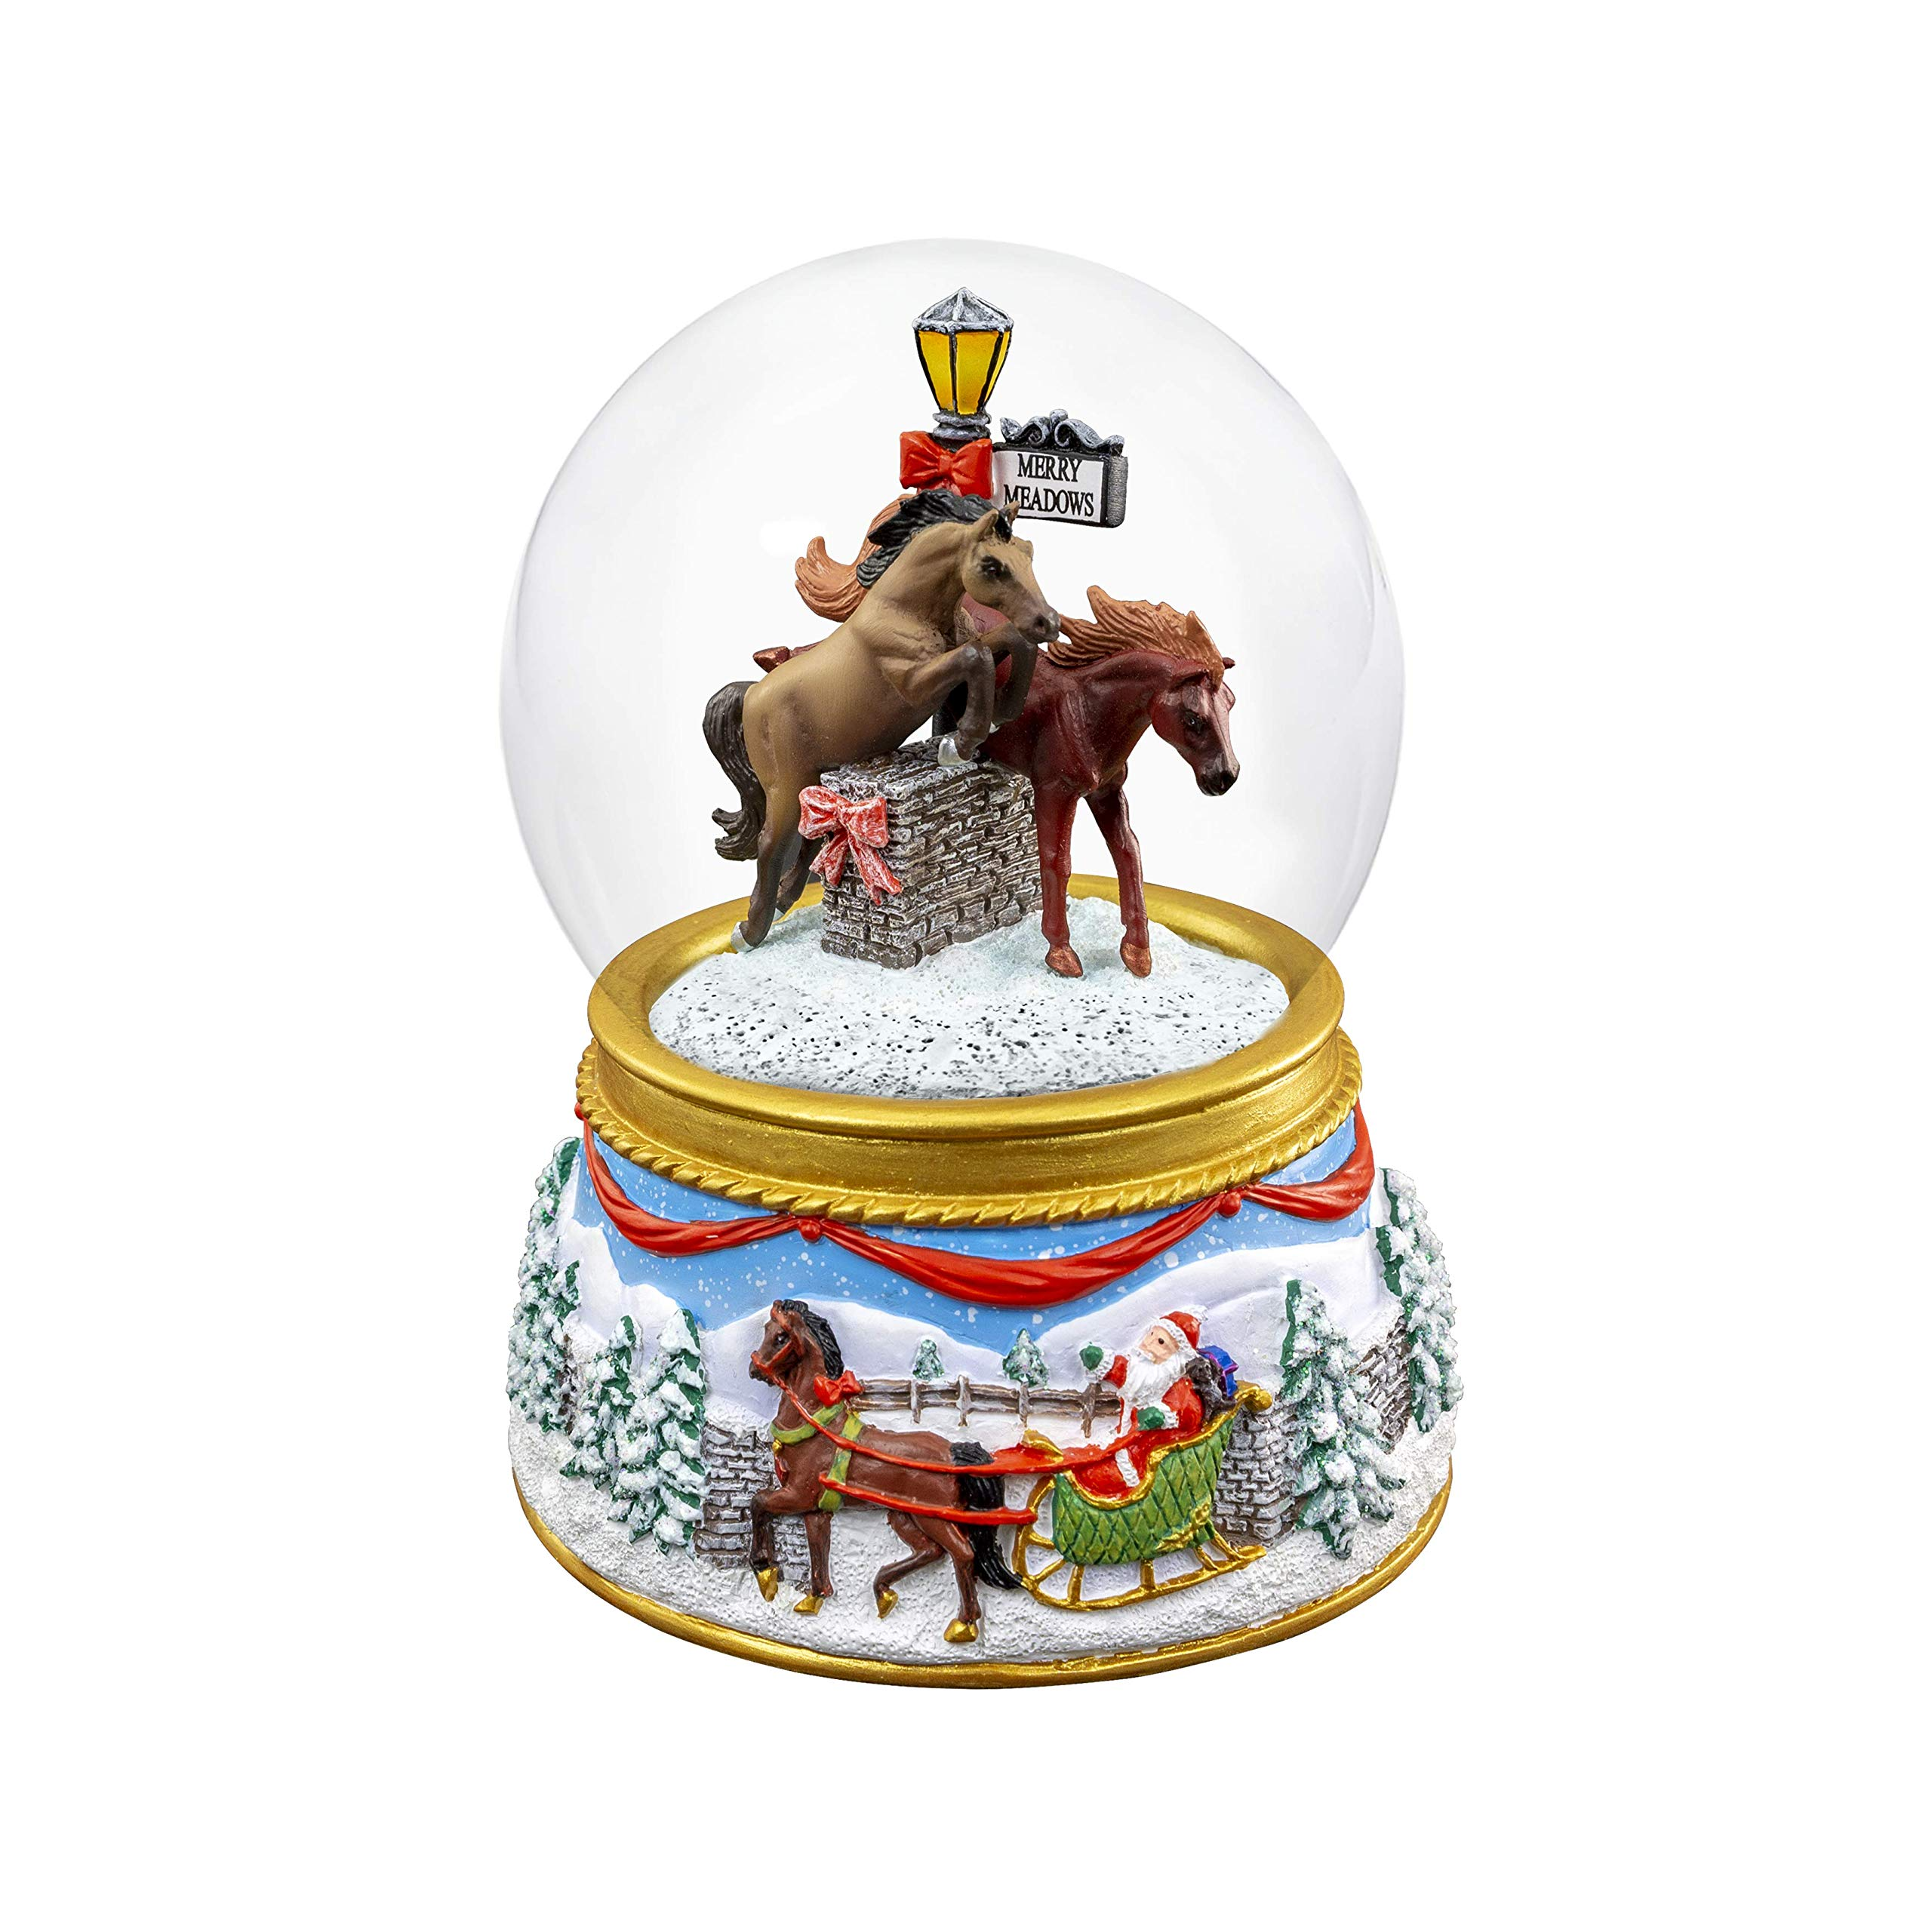 Breyer 2019 Holiday Musical Snow Globe - Merry Meadows   2019 Holiday Collection   Limited Edition   Model #700240 by Breyer